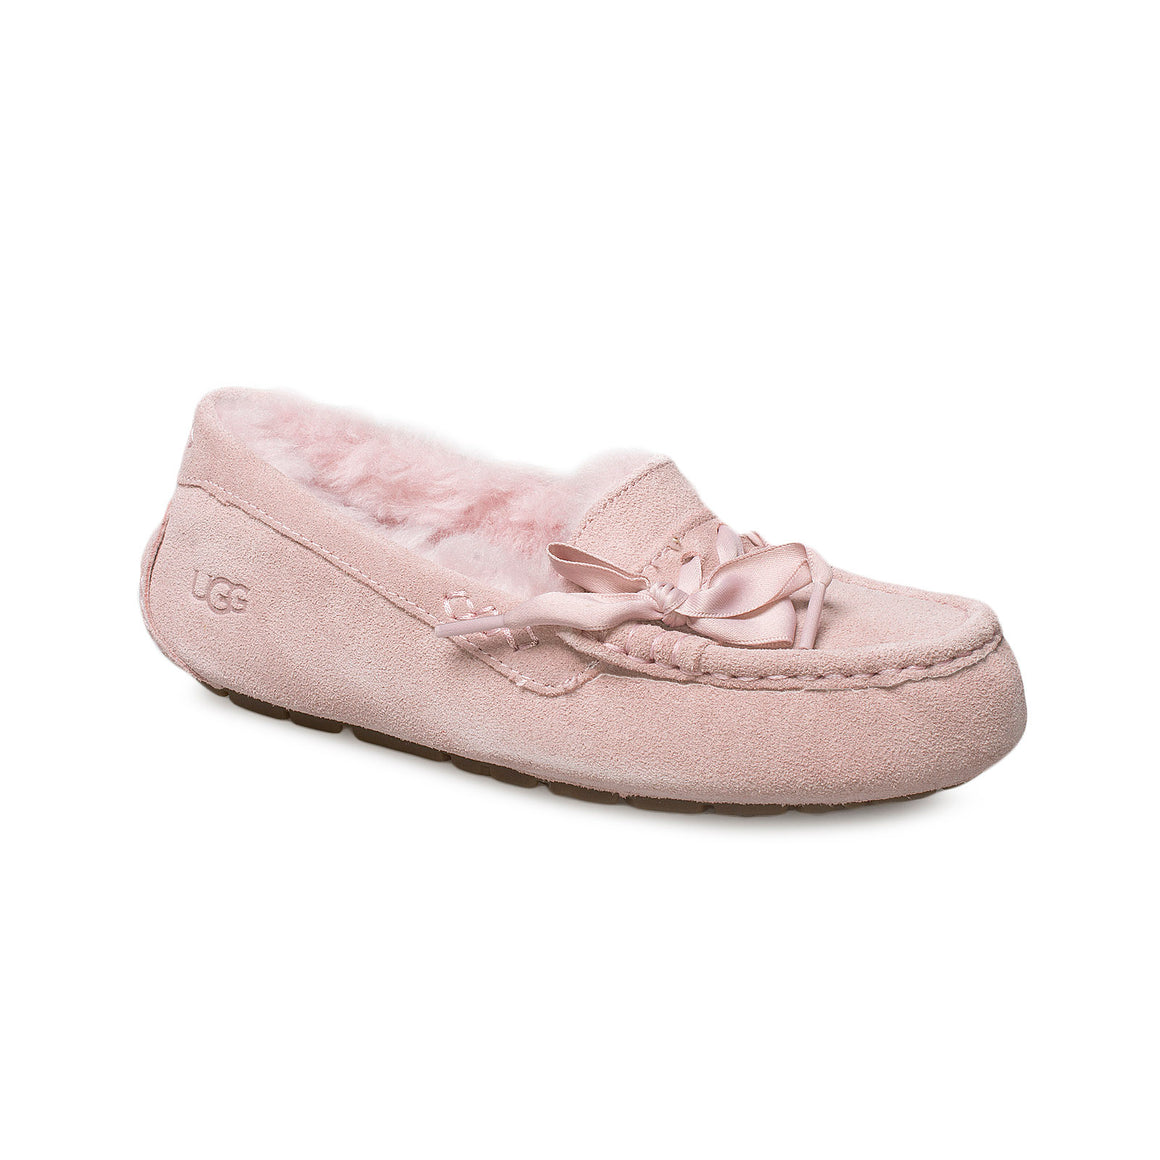 UGG Ansley Lace Pink Crystal Slippers - Women's